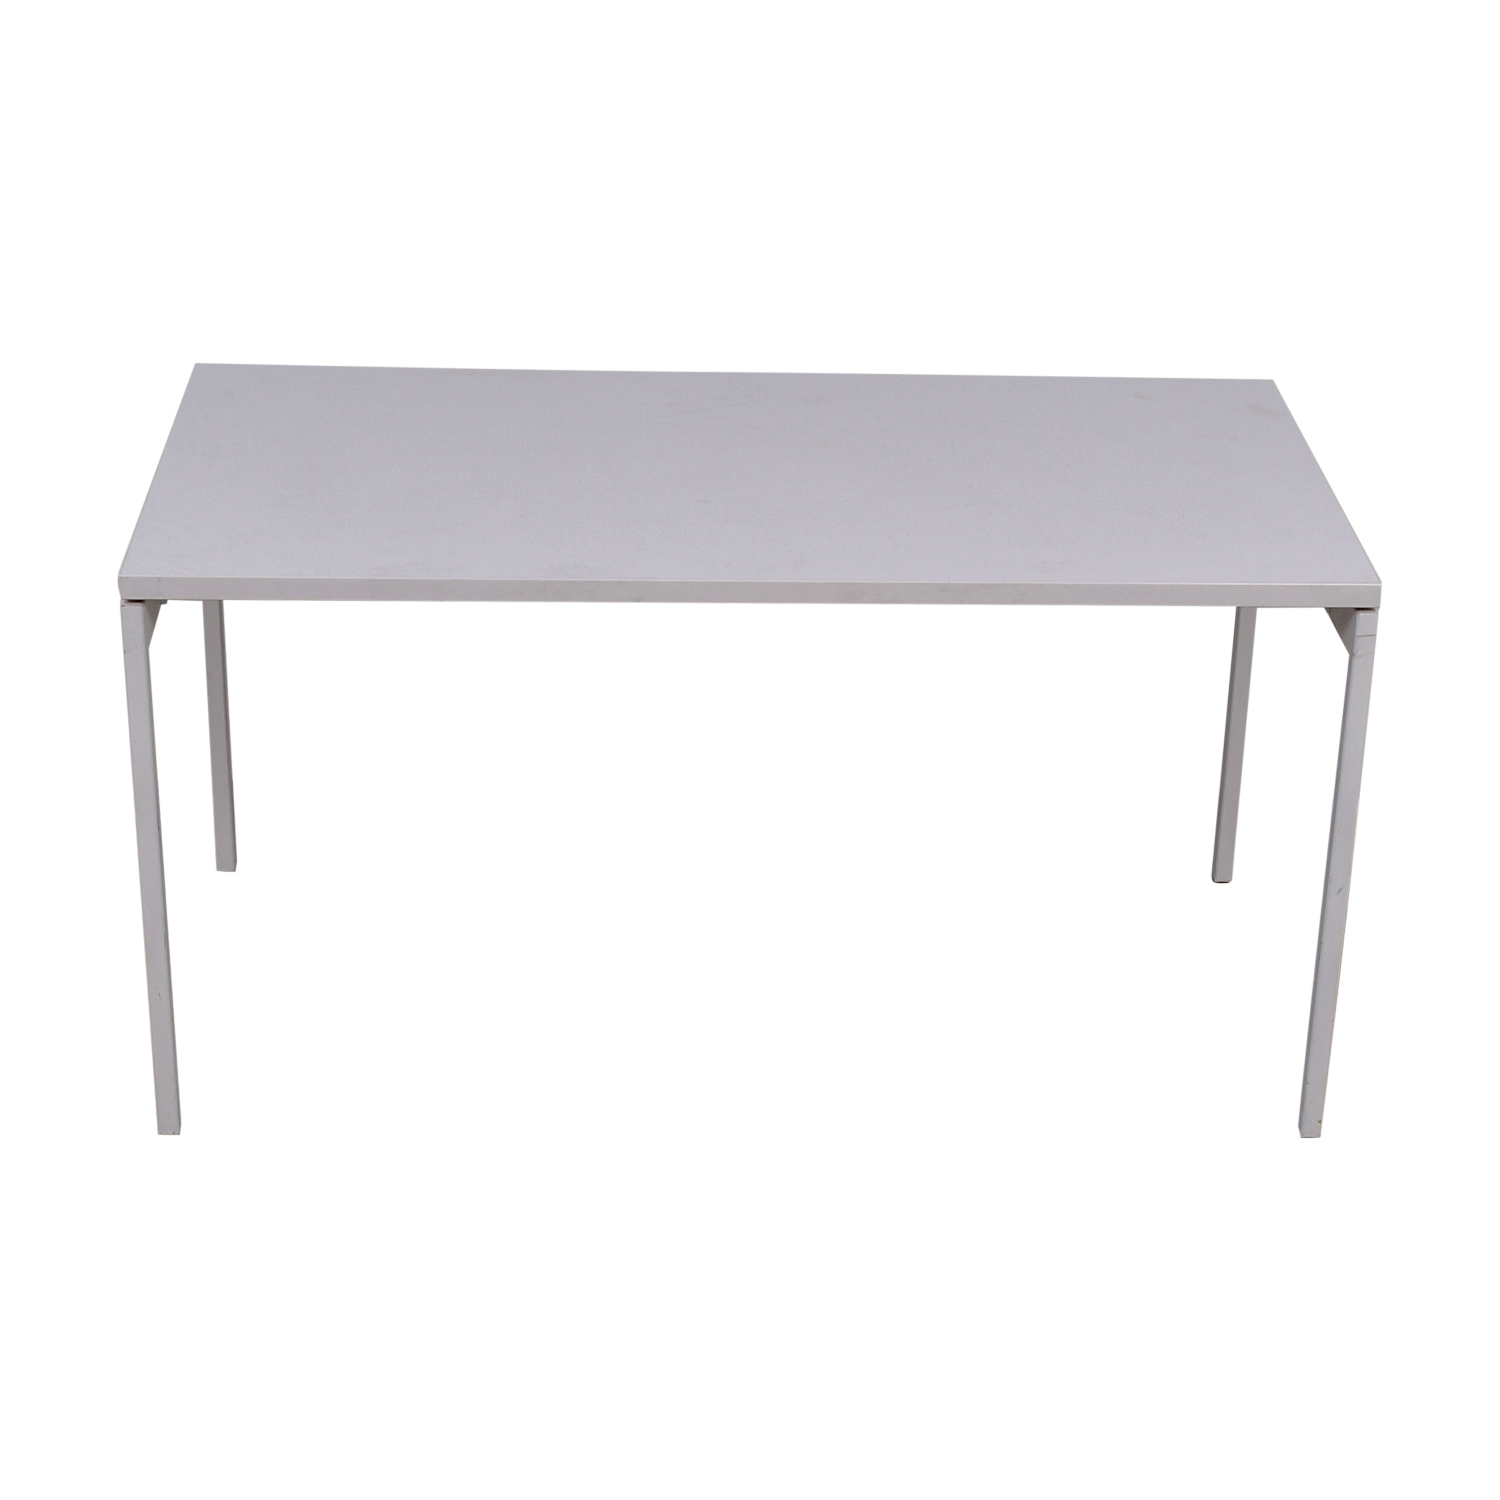 Knoll Knoll White Desk used